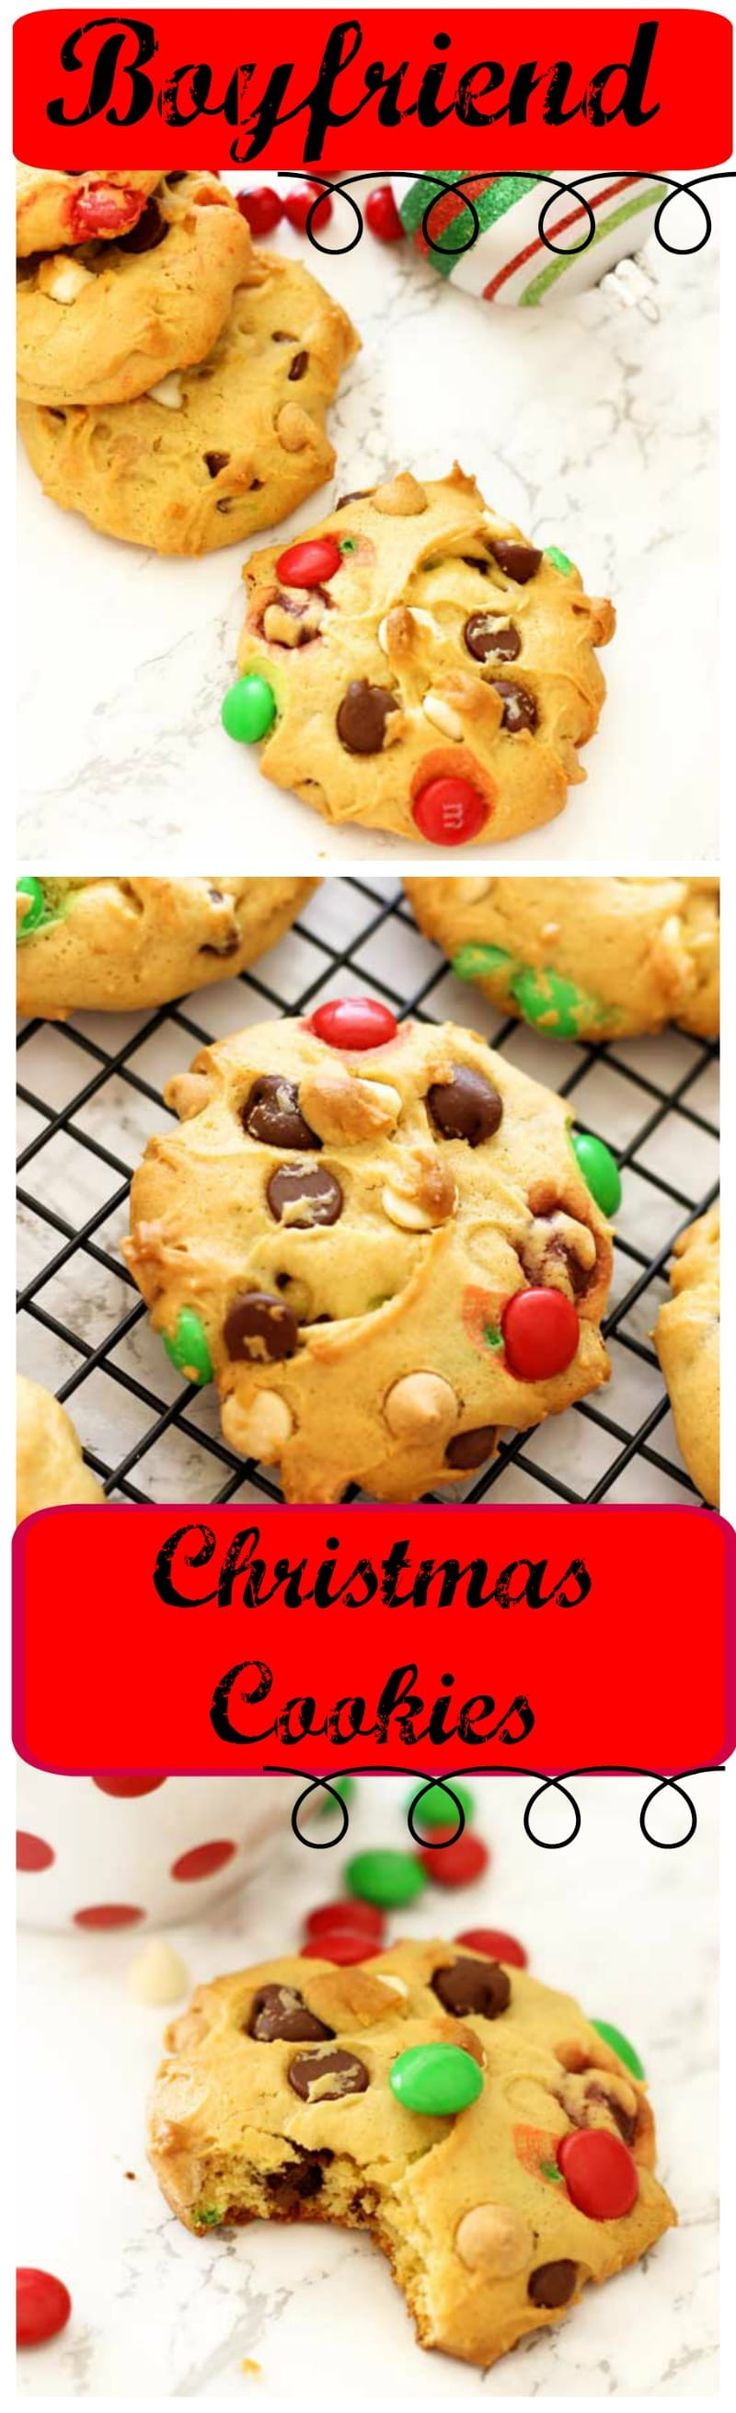 Boyfriend Cookies | Recipes Worth Repeating | Everyone loves a yummy cookie and that's exactly what these Boyfriend Cookies bring to the table…a whole lot of sweet yumminess! These cookies contain white, milk and semisweet chocolates mixed with a creamy peanut butter taste from the Reese's Pieces and peanut butter chips. These cookies are  perfect for the holiday season!